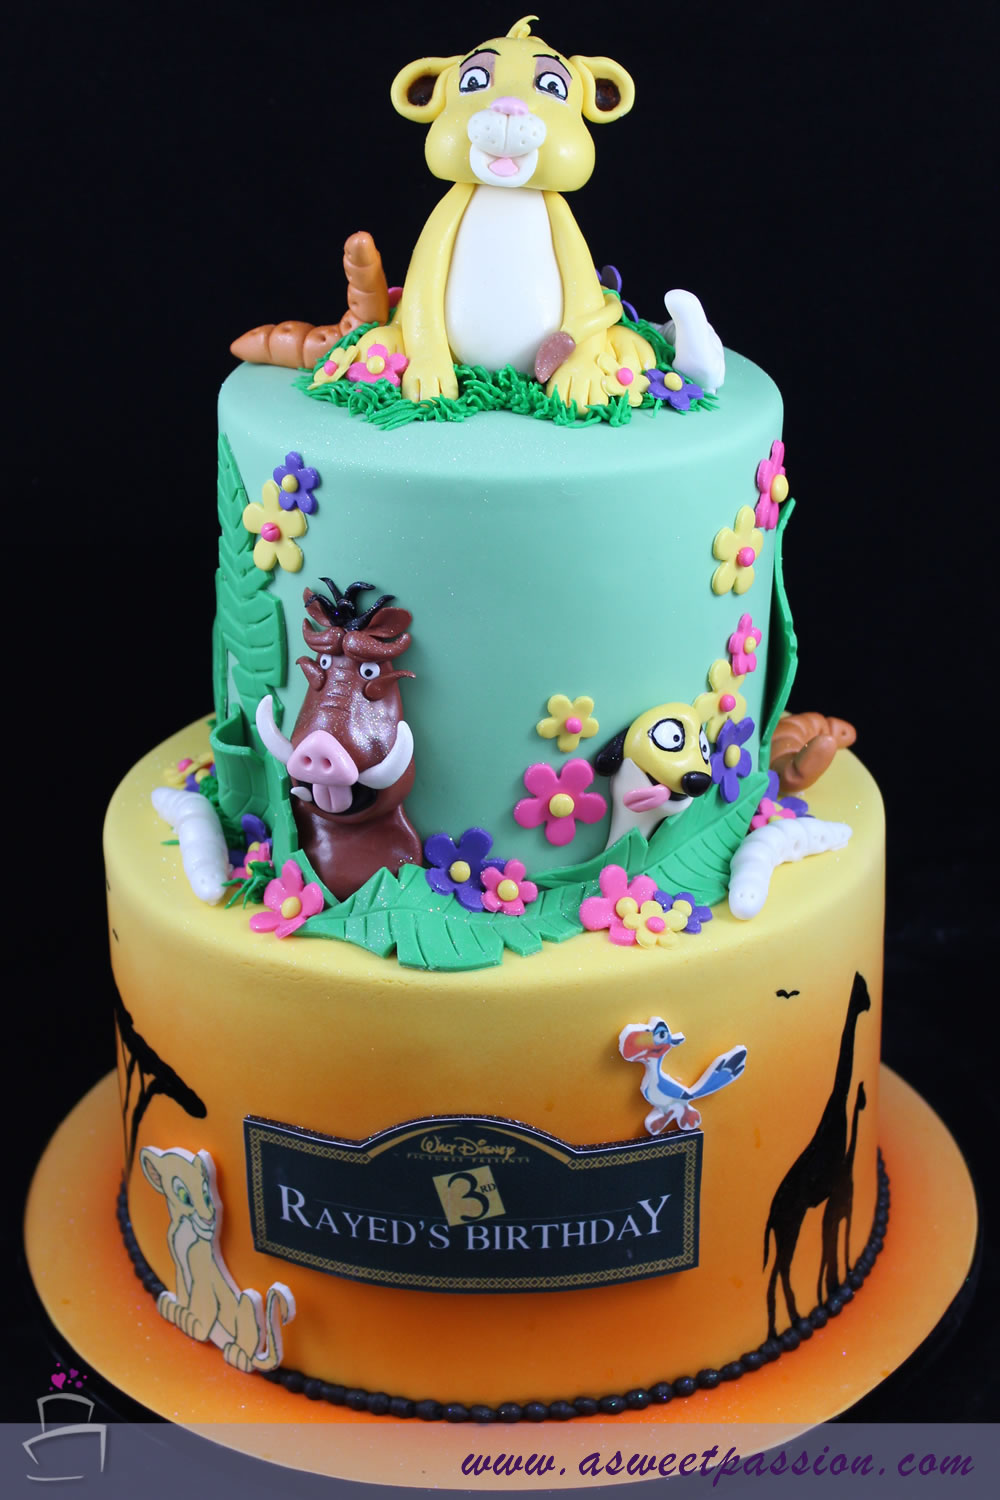 Hand Painted Animals On Cake